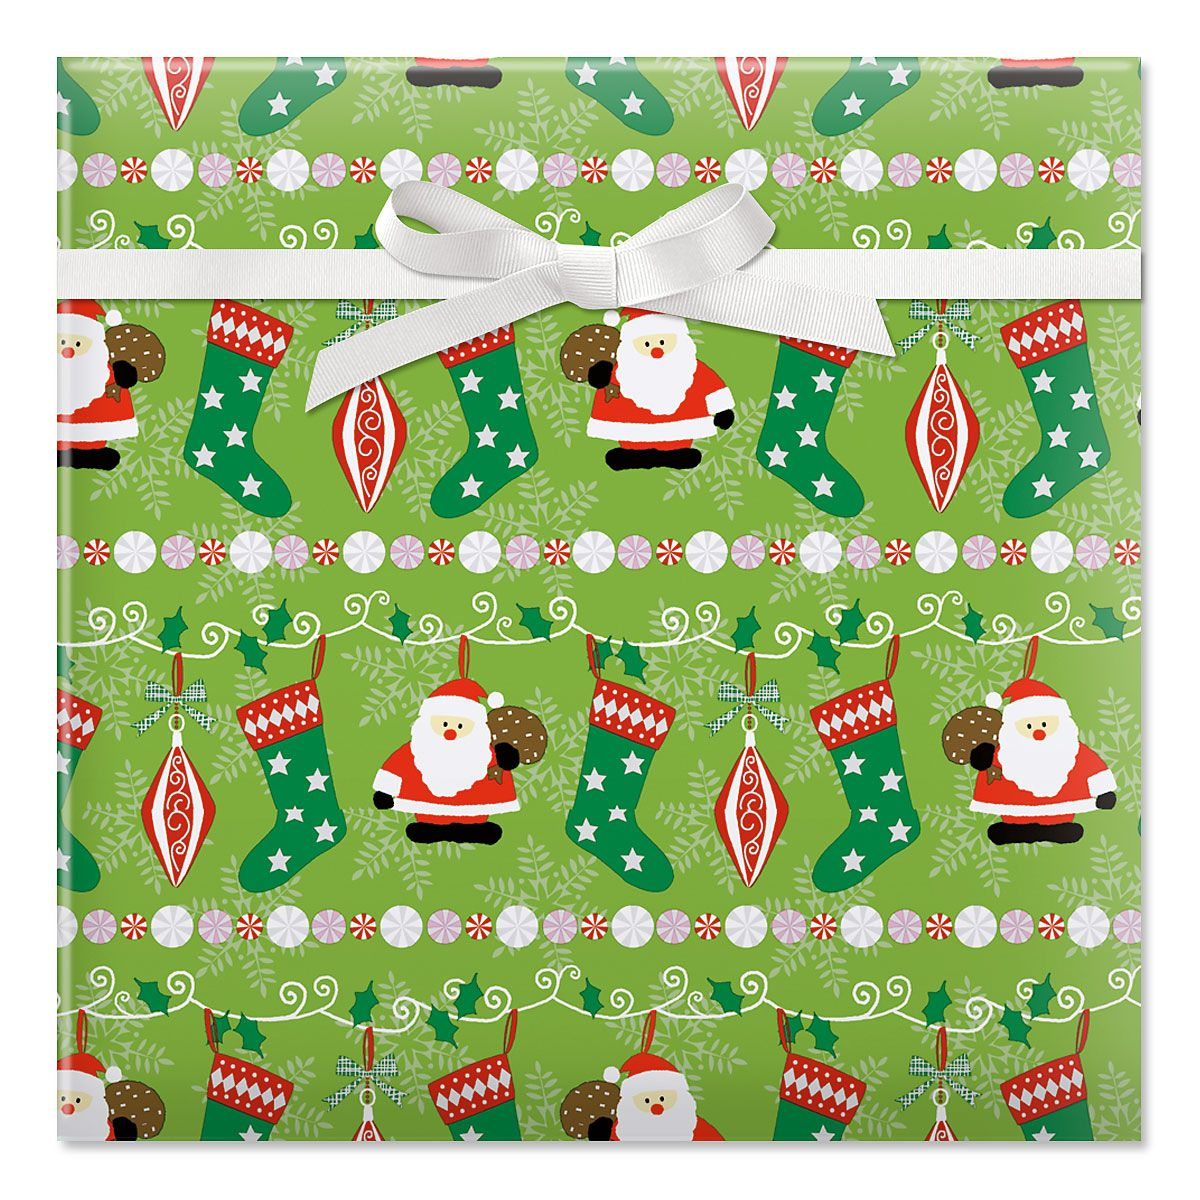 Holly, Jolly Christmas Jumbo Rolled Gift Wrap